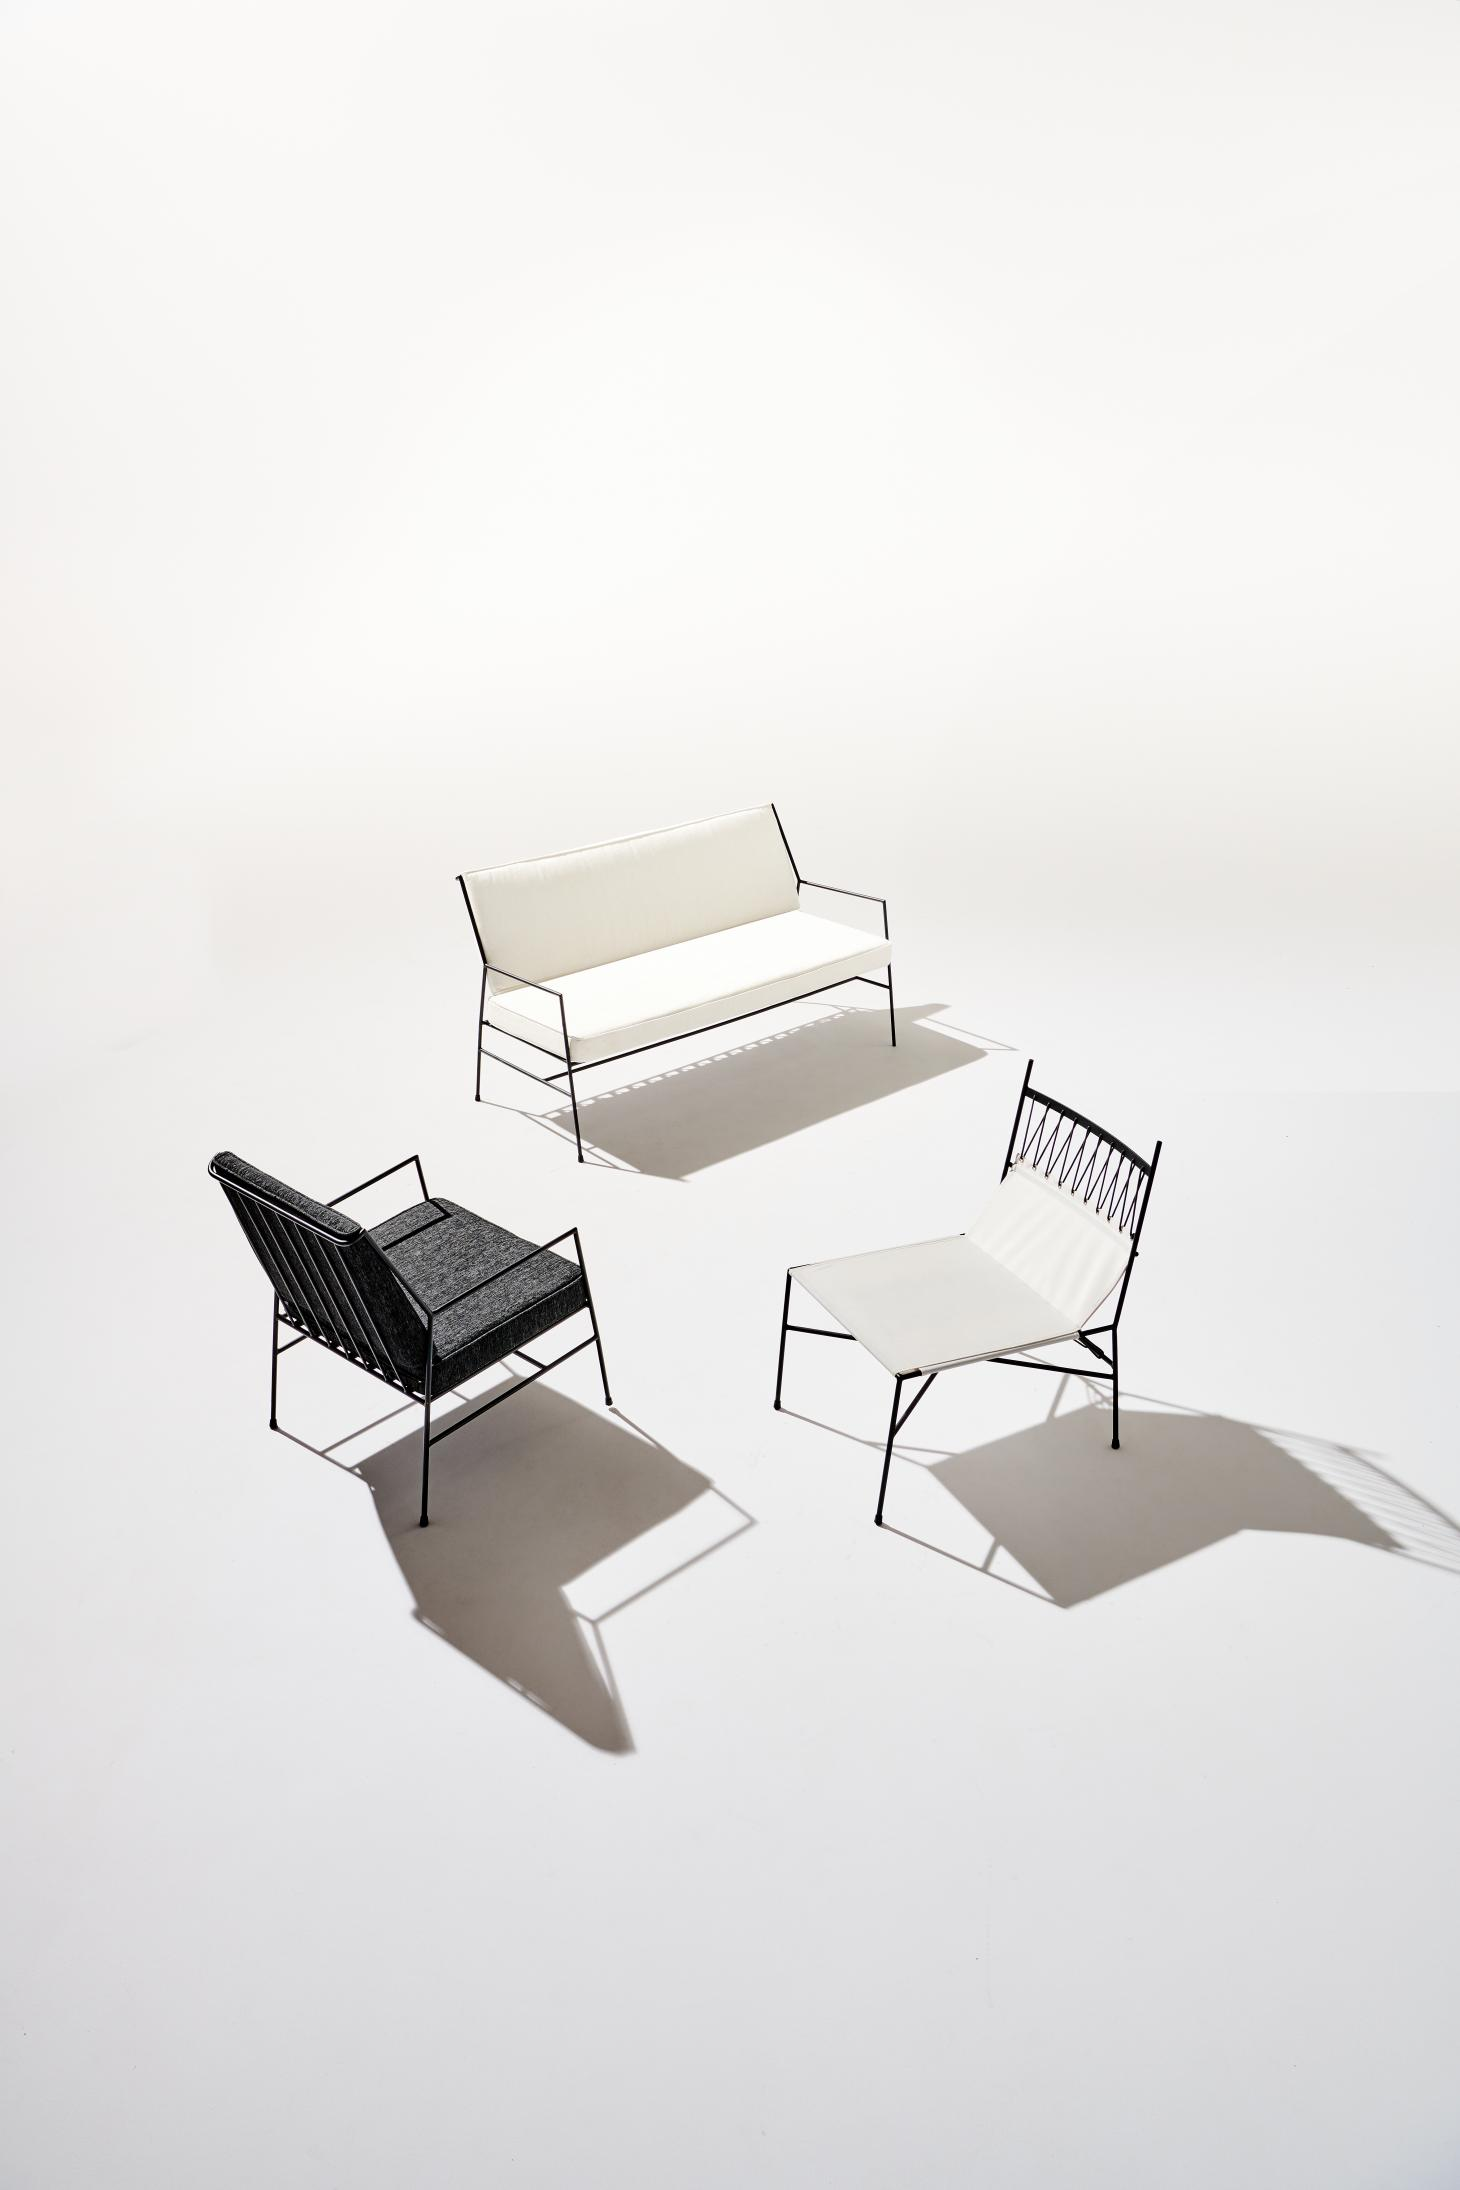 CB2 Outdoor furniture by Paul McCobb